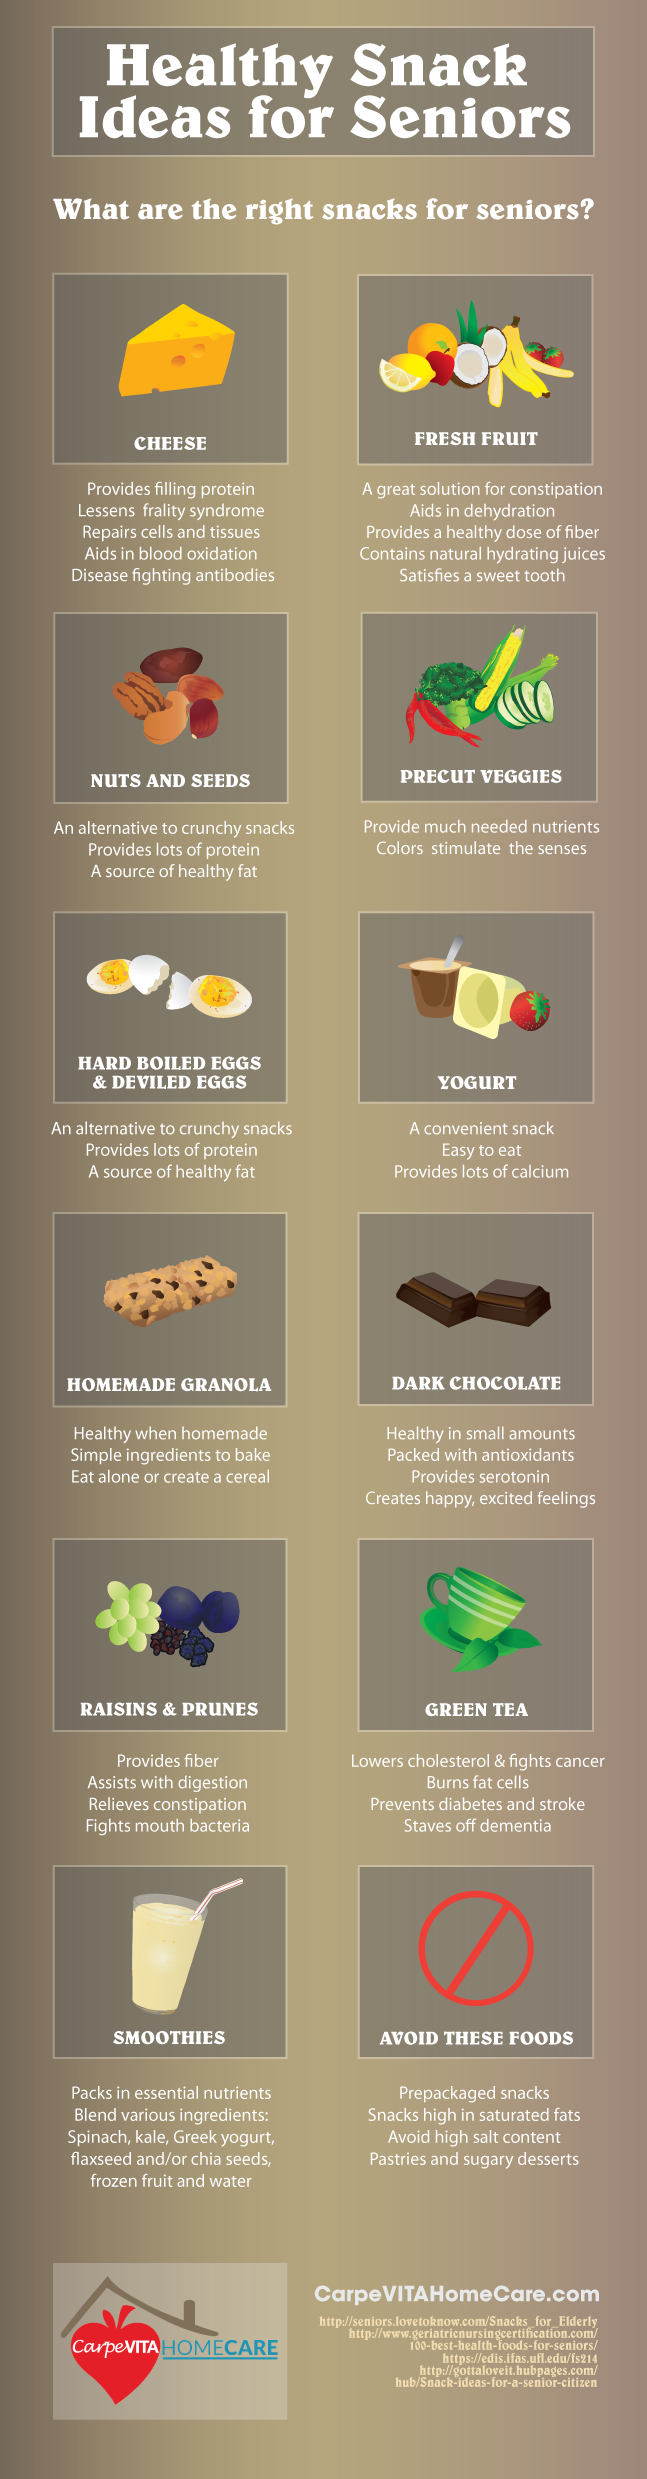 Infographic_Healthy-Snack-Ideas-for-Seniors